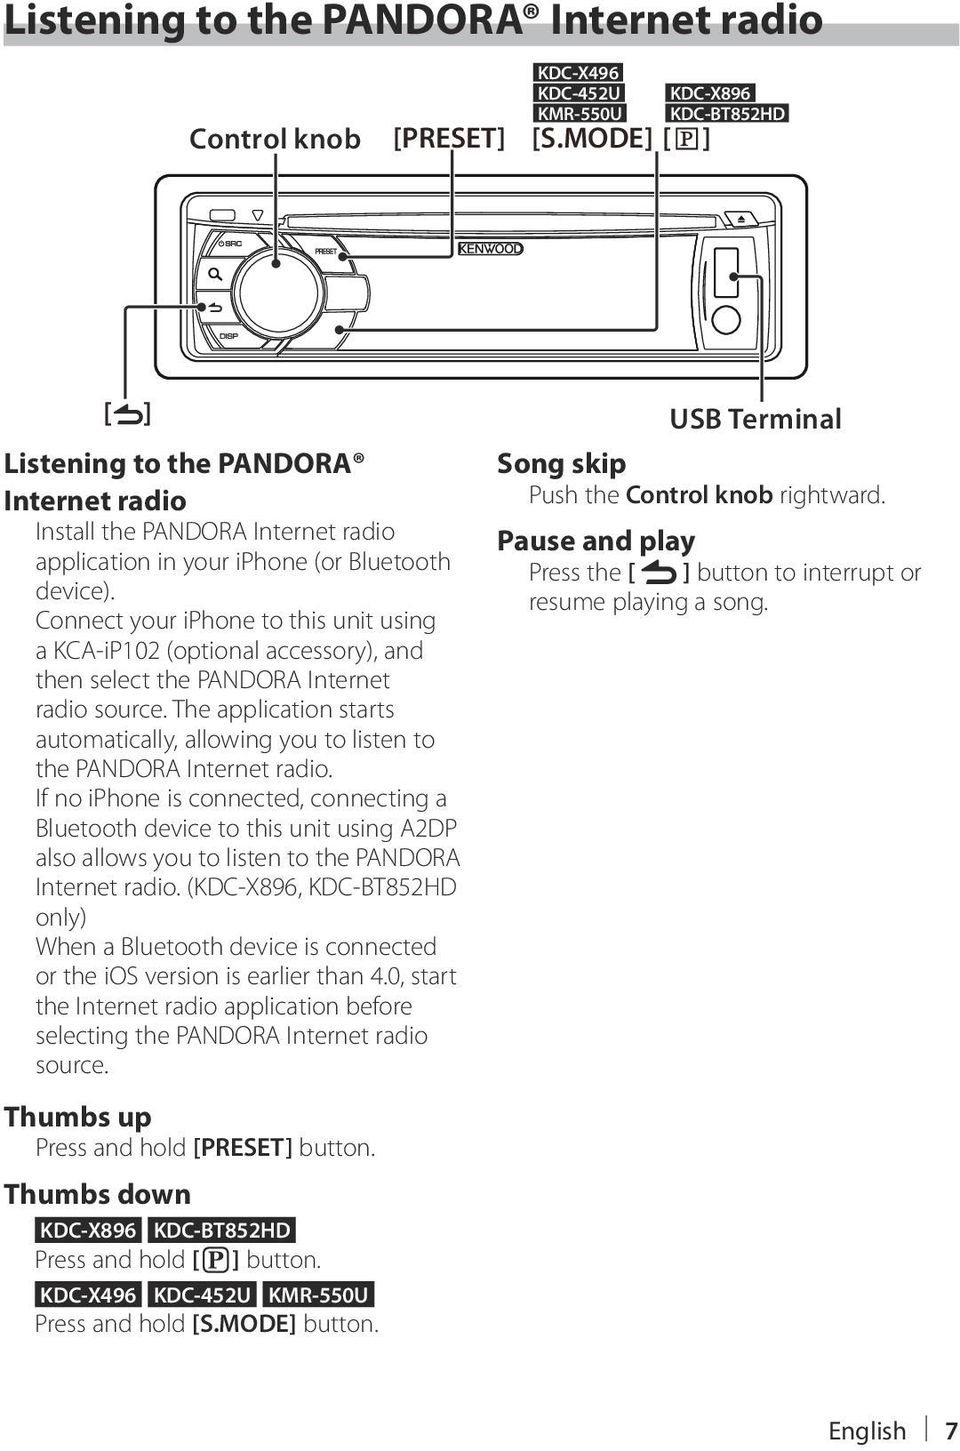 Connect your iphone to this unit using a KCA-iP102 (optional accessory), and then select the PANDORA Internet radio source.